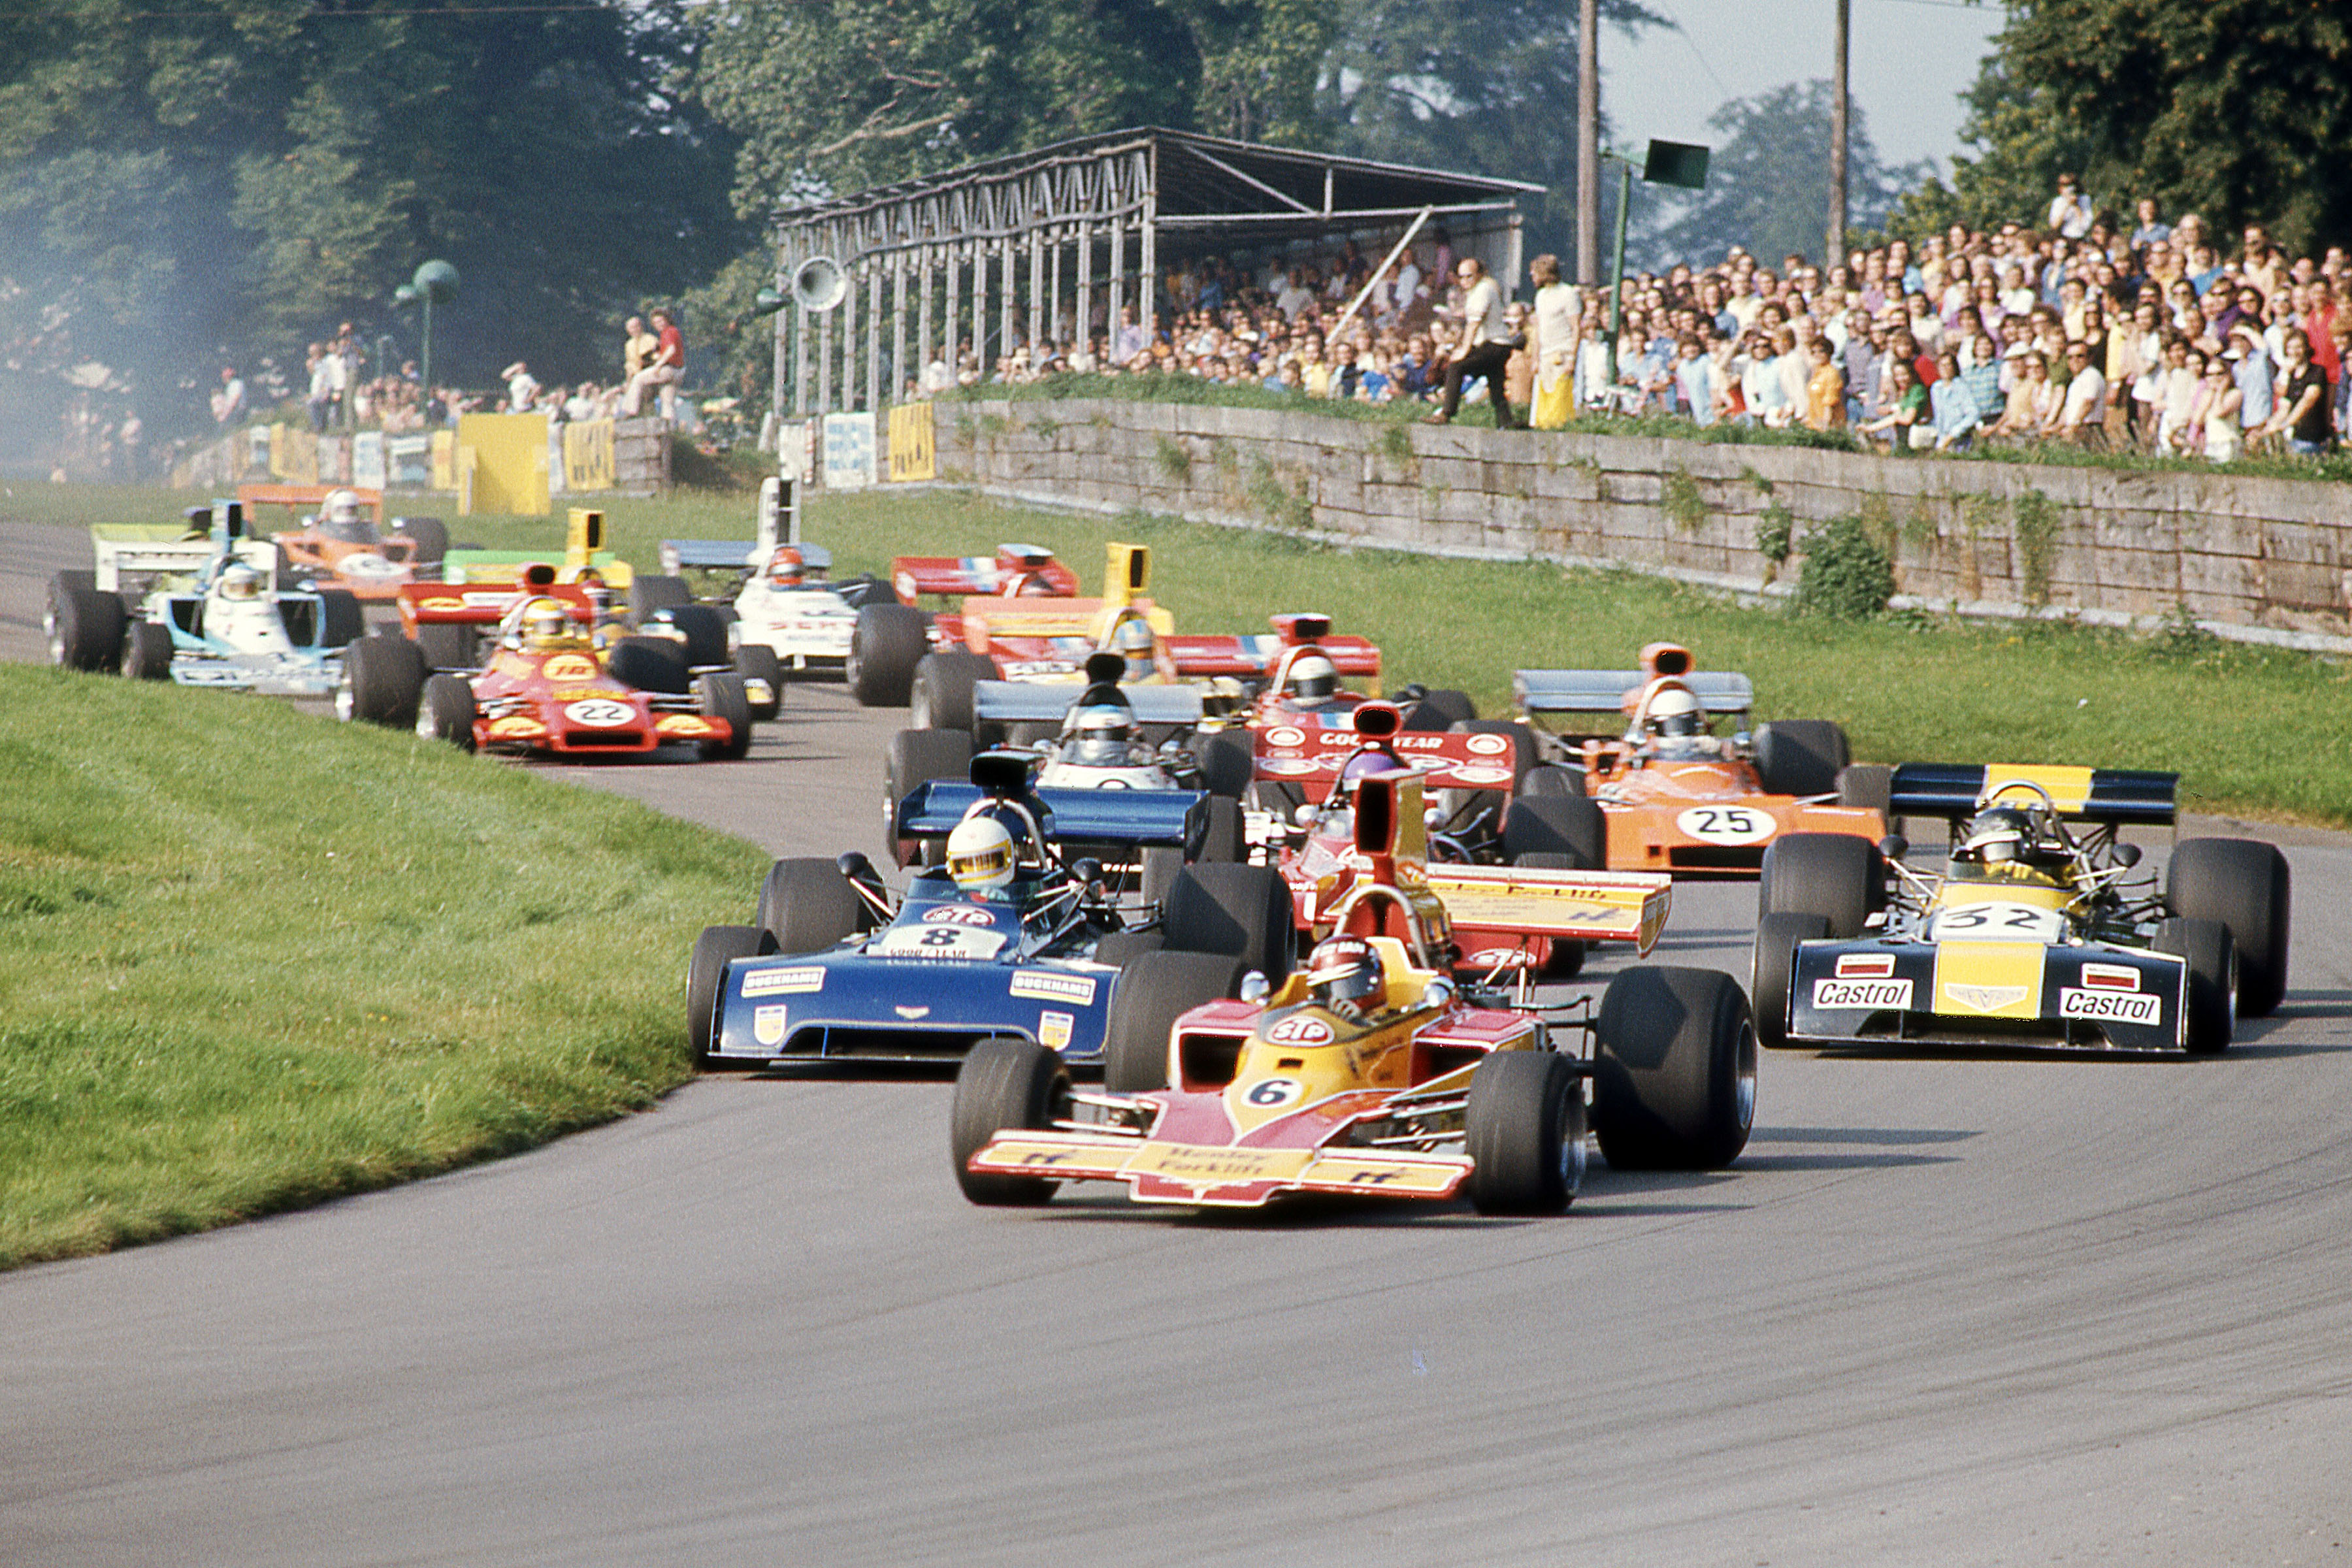 09-Sep-73, Oulton Park, Rothmans Gold Cup for F5000 cars, start of the Gold Cup, , , Motor RacingCopyright:www.mphotographic.co.uk © Mike Petch 2018.